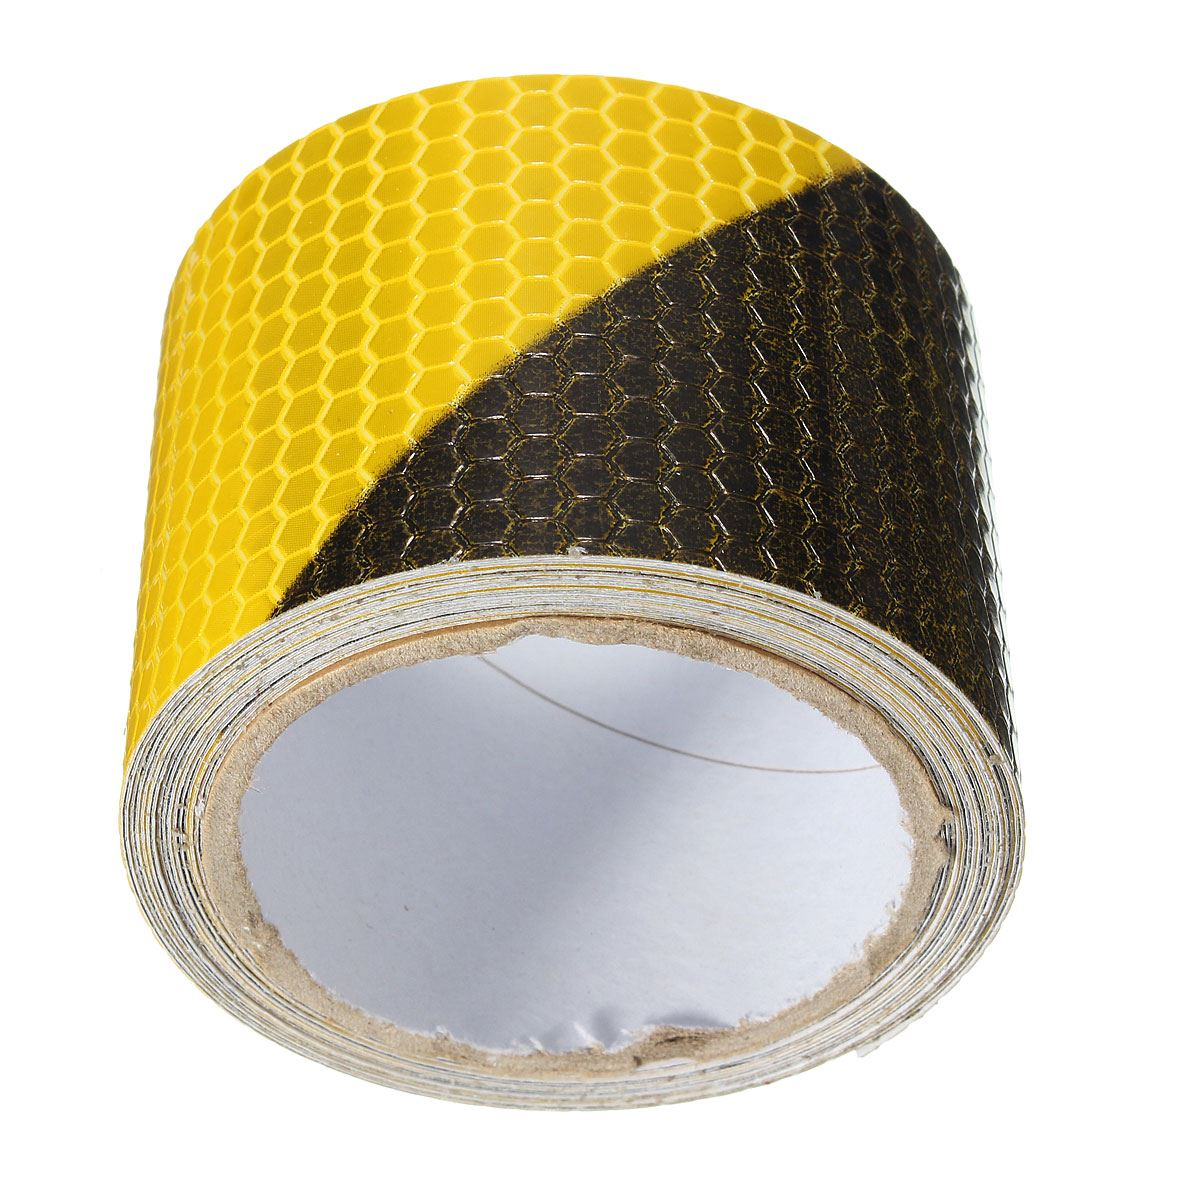 New Arrival Black Yellow Reflective Safety Warning Conspicuity Tape Film Sticker 300cm x 5cm Warning Tapes Security Protection цена